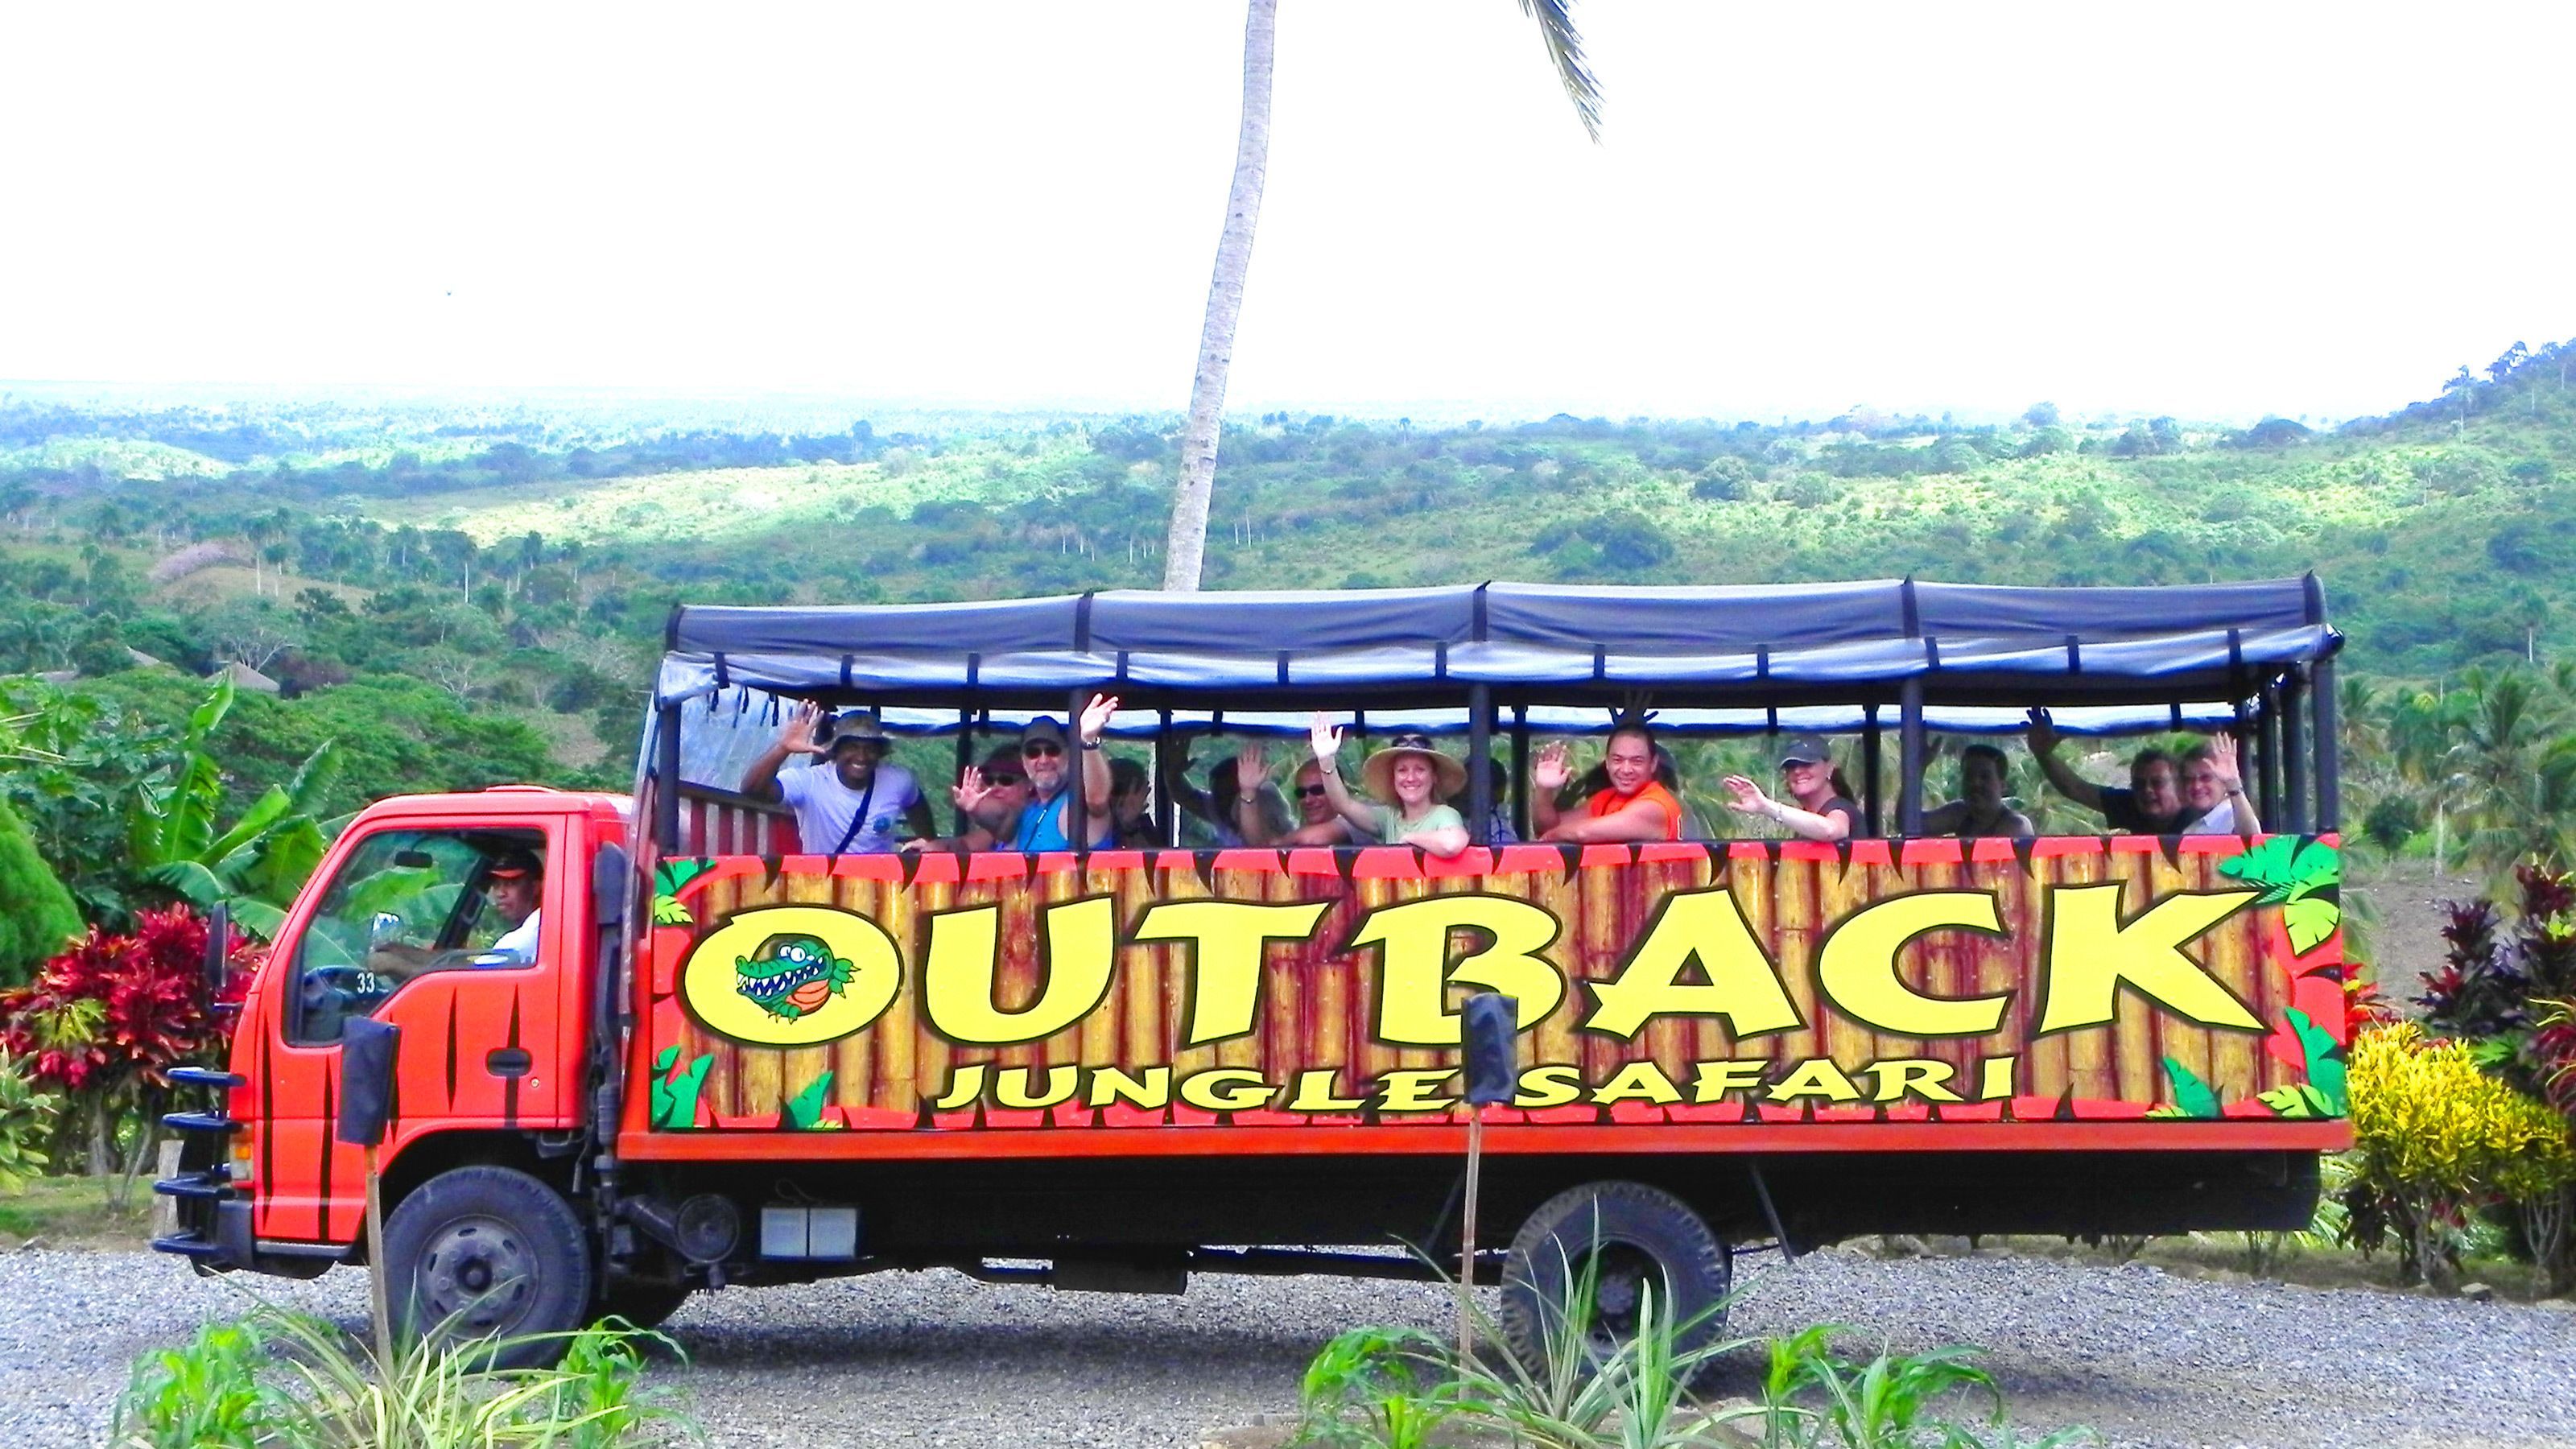 Group waving from the Outback Jungle Safari bus